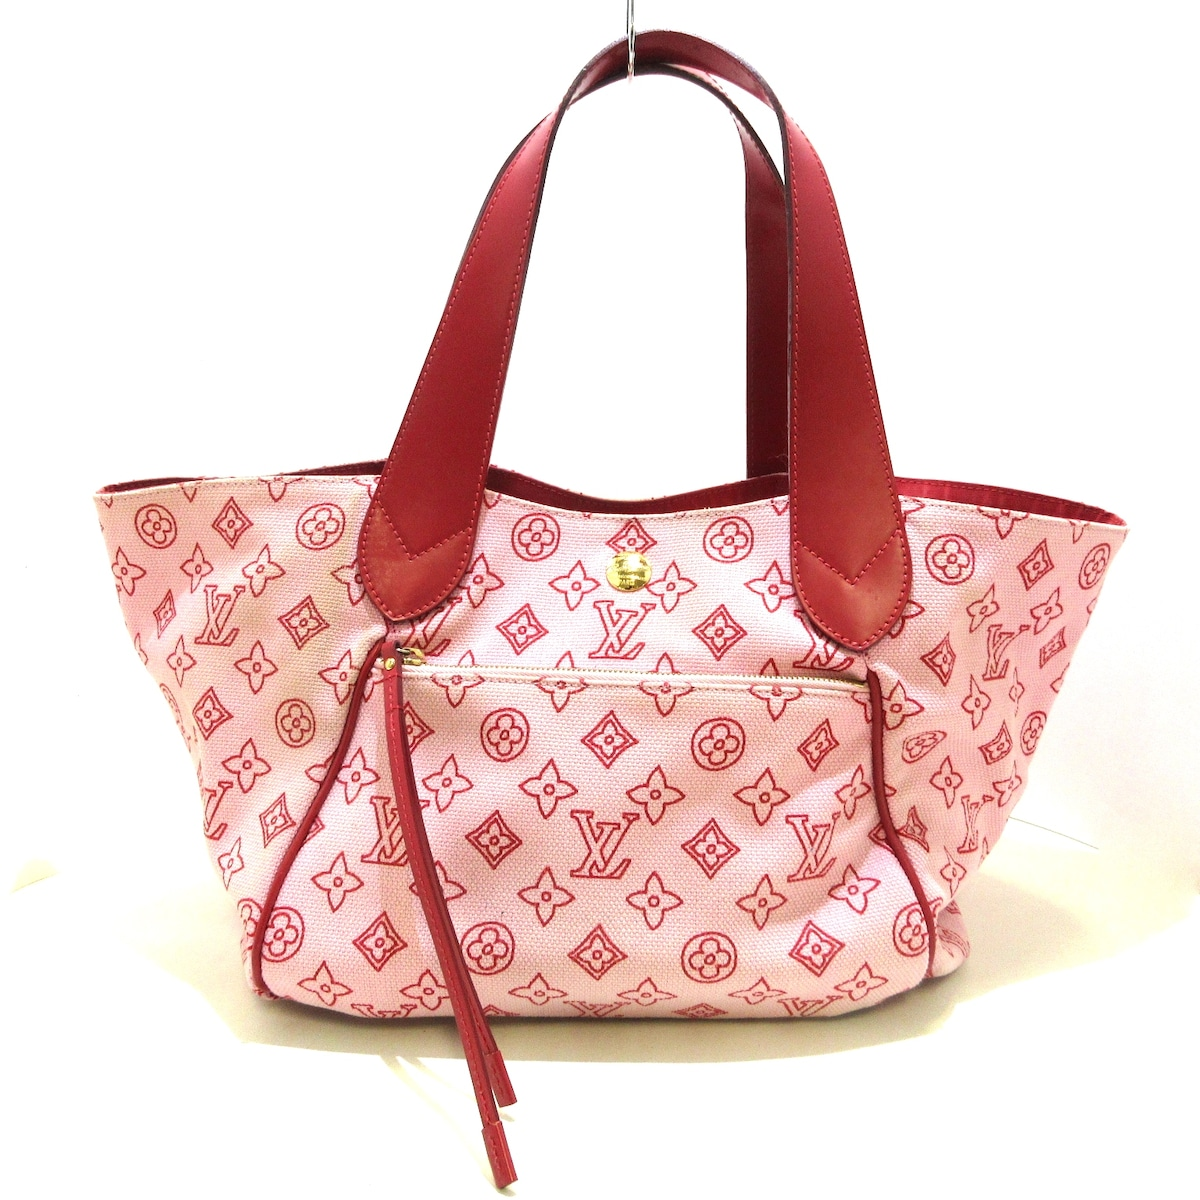 LOUIS VUITTON(ルイヴィトン)のカバイパネマPM